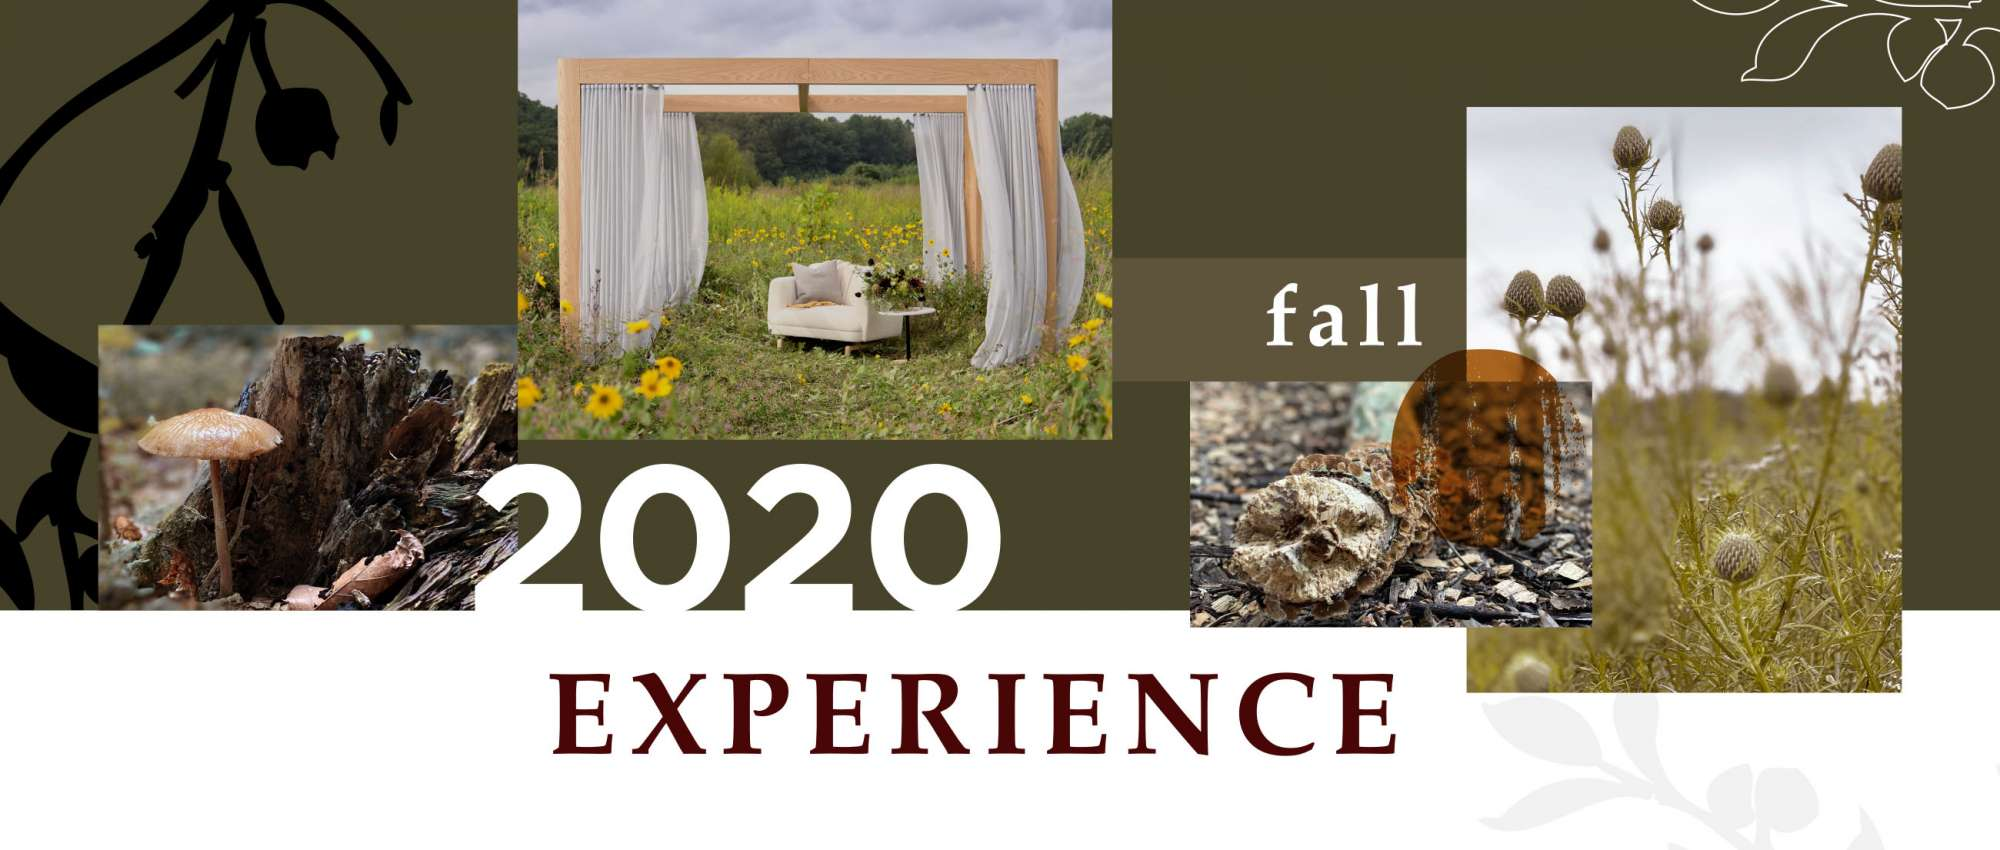 Fall 2020 Experience